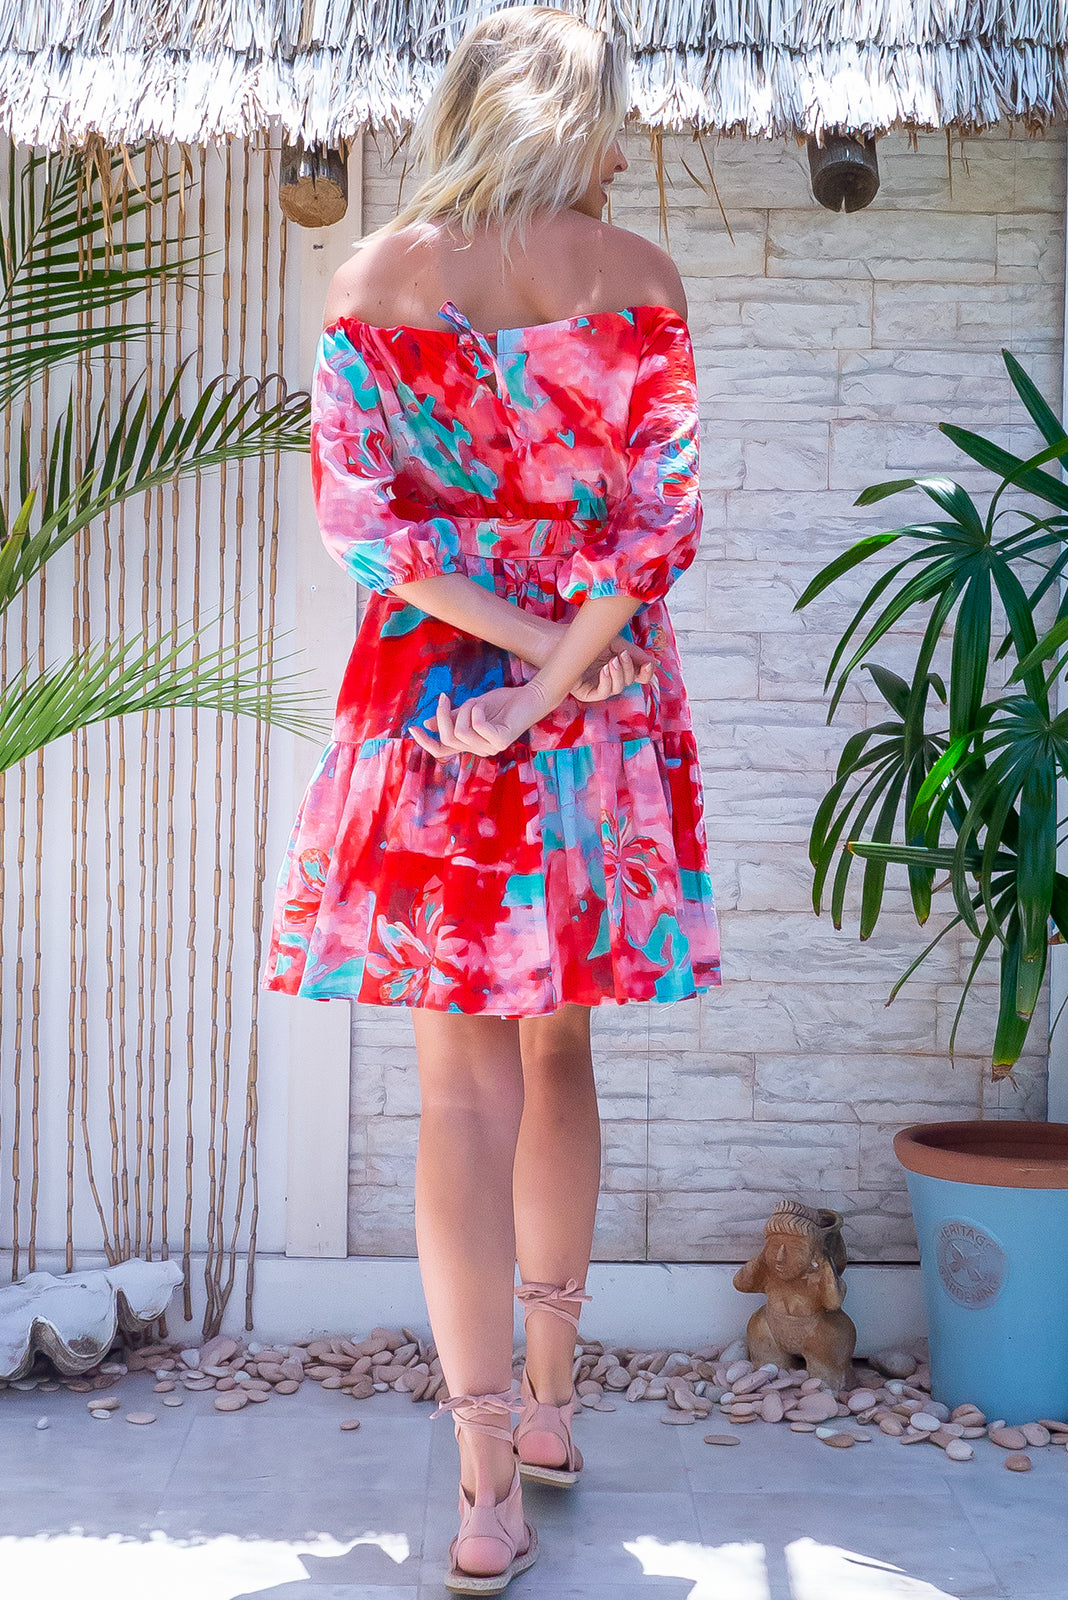 Summer must-have dress is here, the Lulu Babe Summer Splash Swing Mini Dress features small side pockets, fabric belt included, elasticated sleeve cuffs for puff effect and 100% cotton in red, pink, aqua watercolour print.